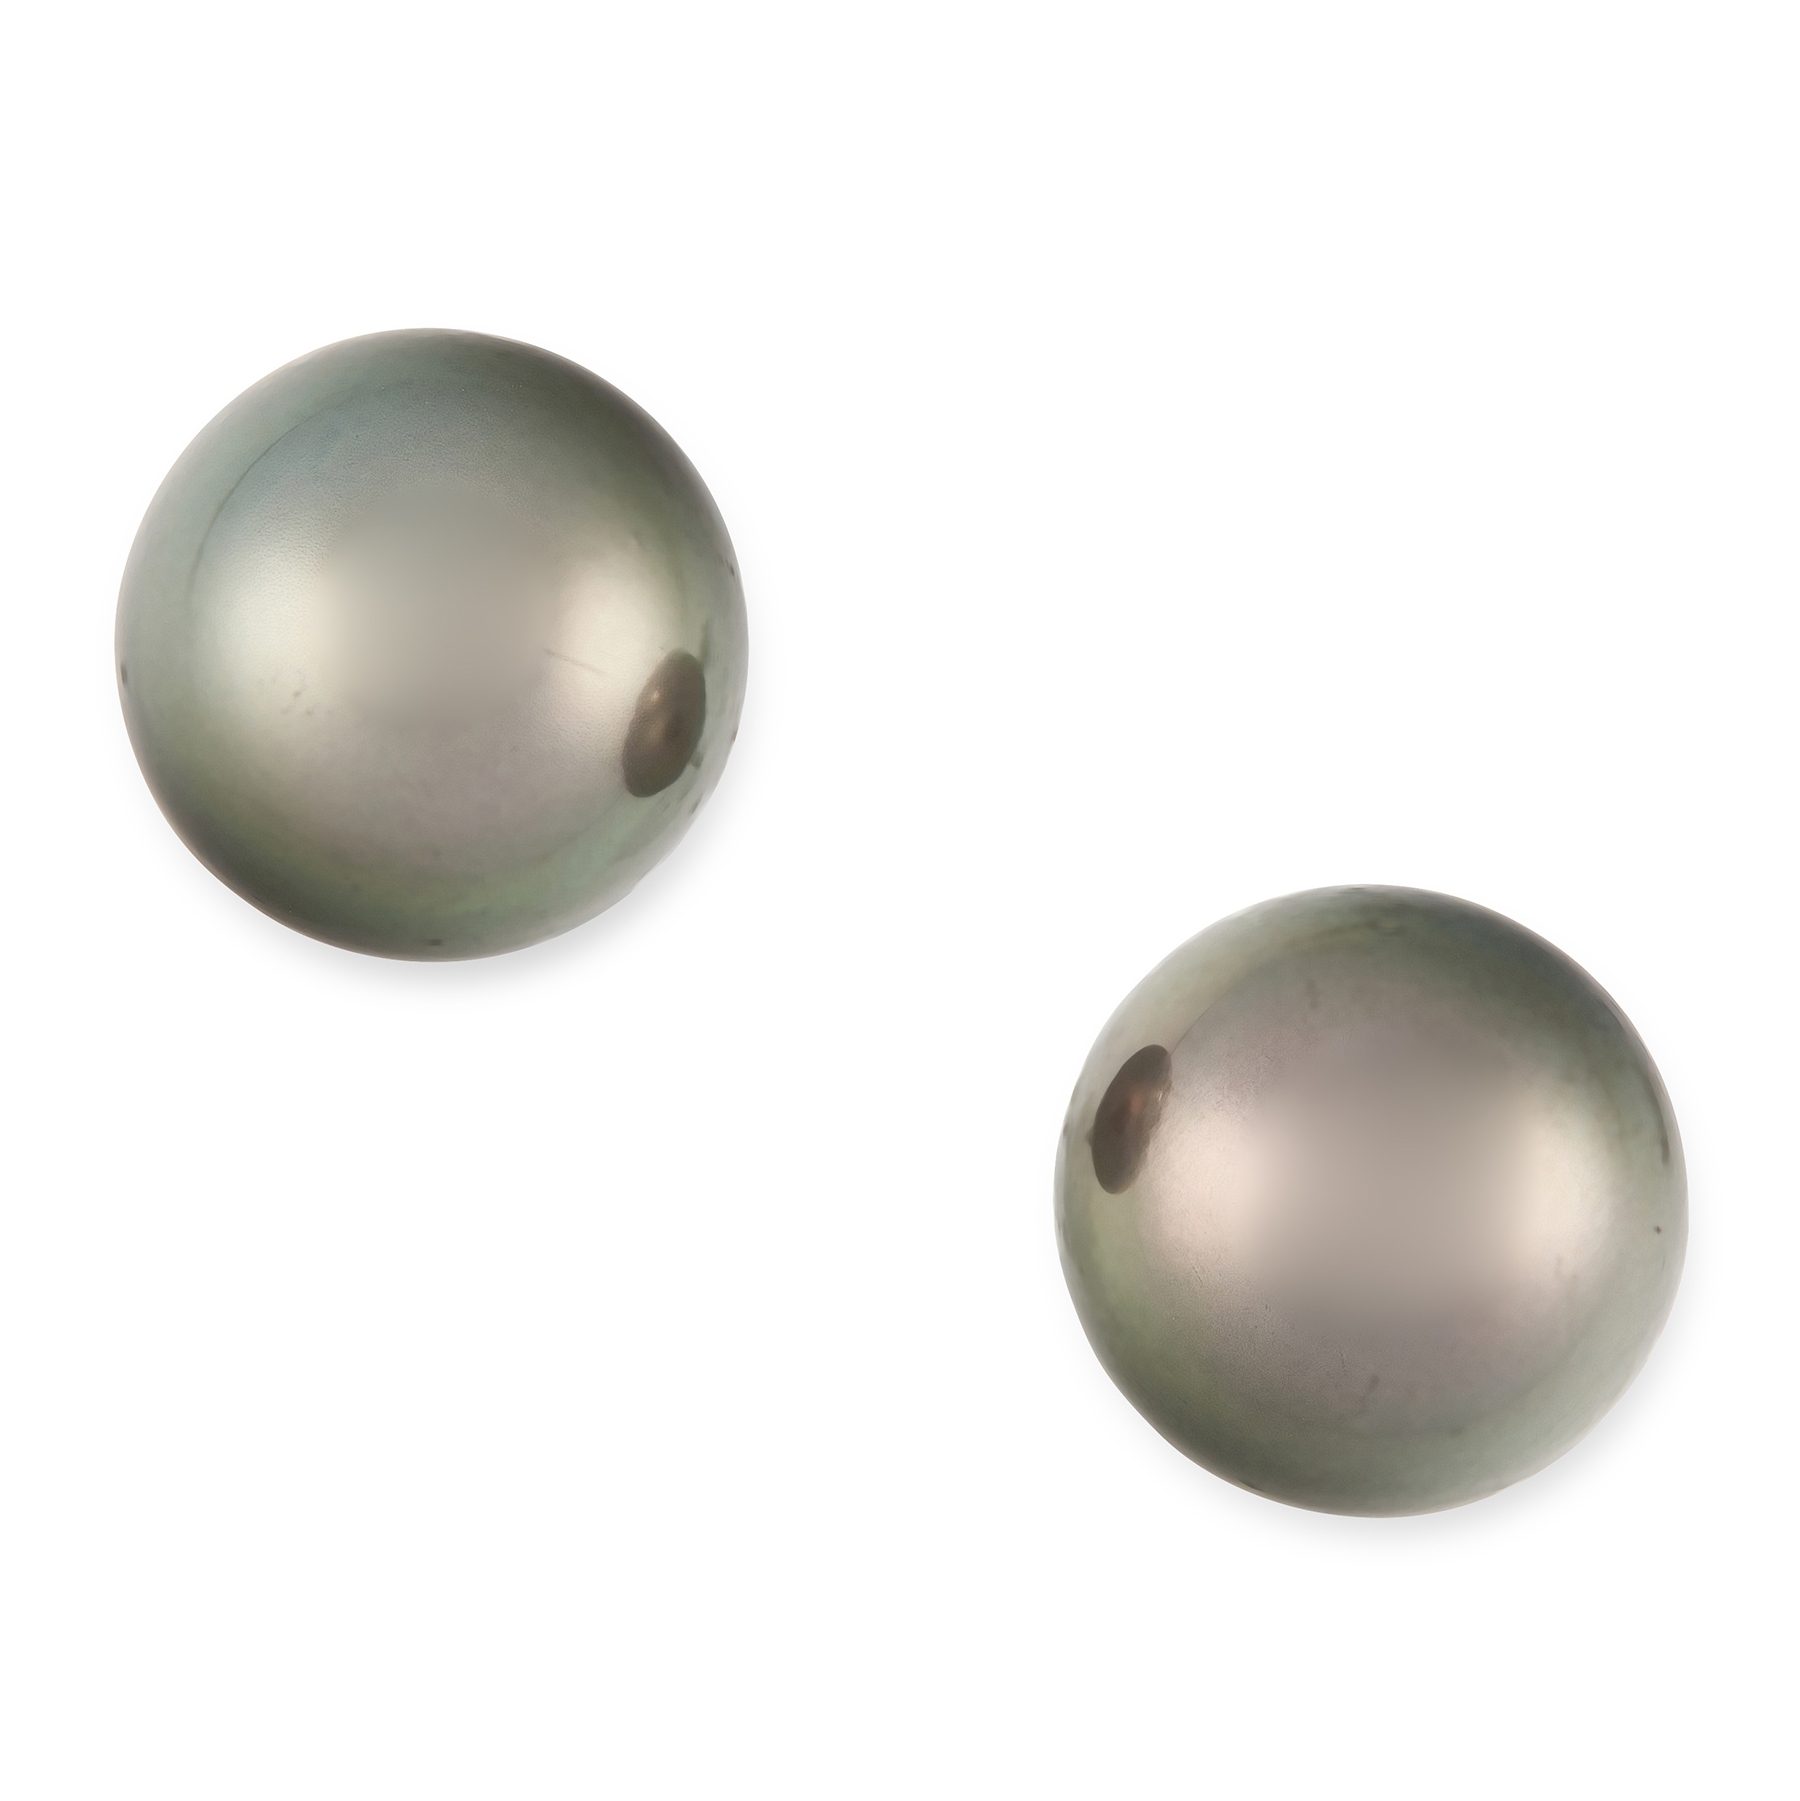 A PAIR OF BLACK PEARL STUD EARRINGS in 18ct white gold, each set with a black pearl of 12.65 mm,